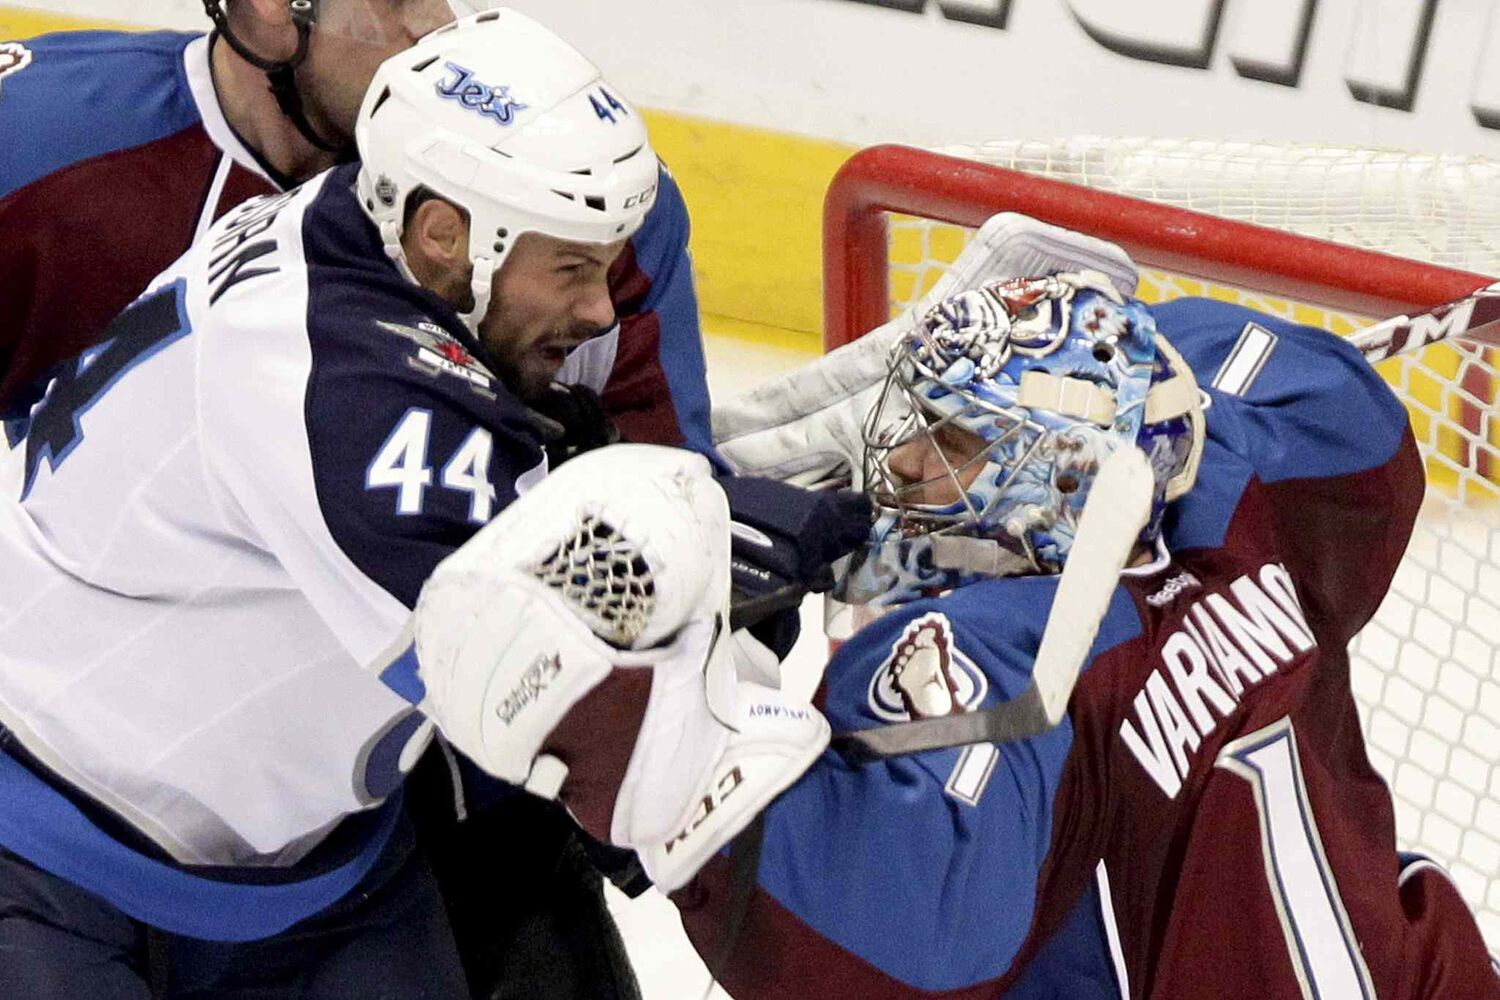 Winnipeg Jets defenceman  Zach Bogosian gets tangled up with Colorado Avalanche goalie Semyon Varlamov during the first period. (BARRY GUTIERREZ / THE ASSOCIATED PRESS)